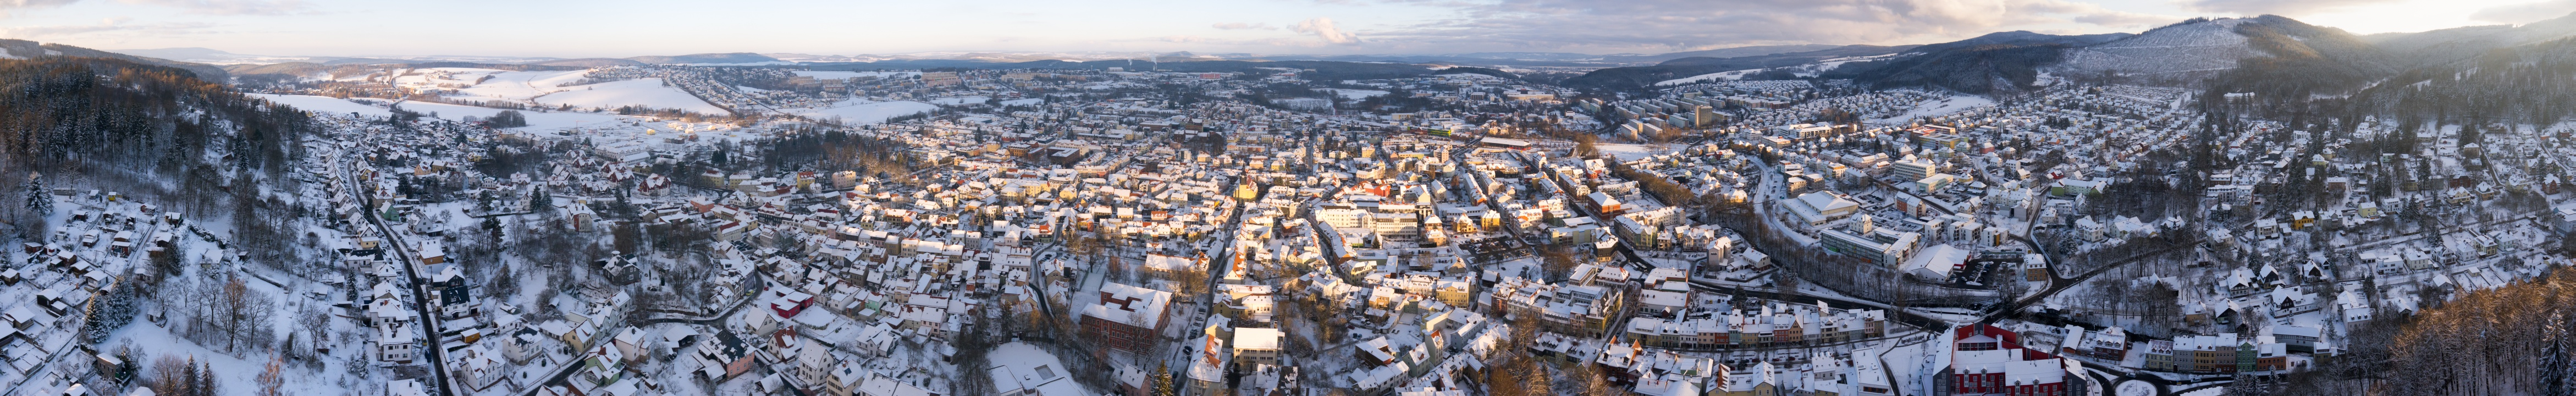 Ilmenau Winterpanorama